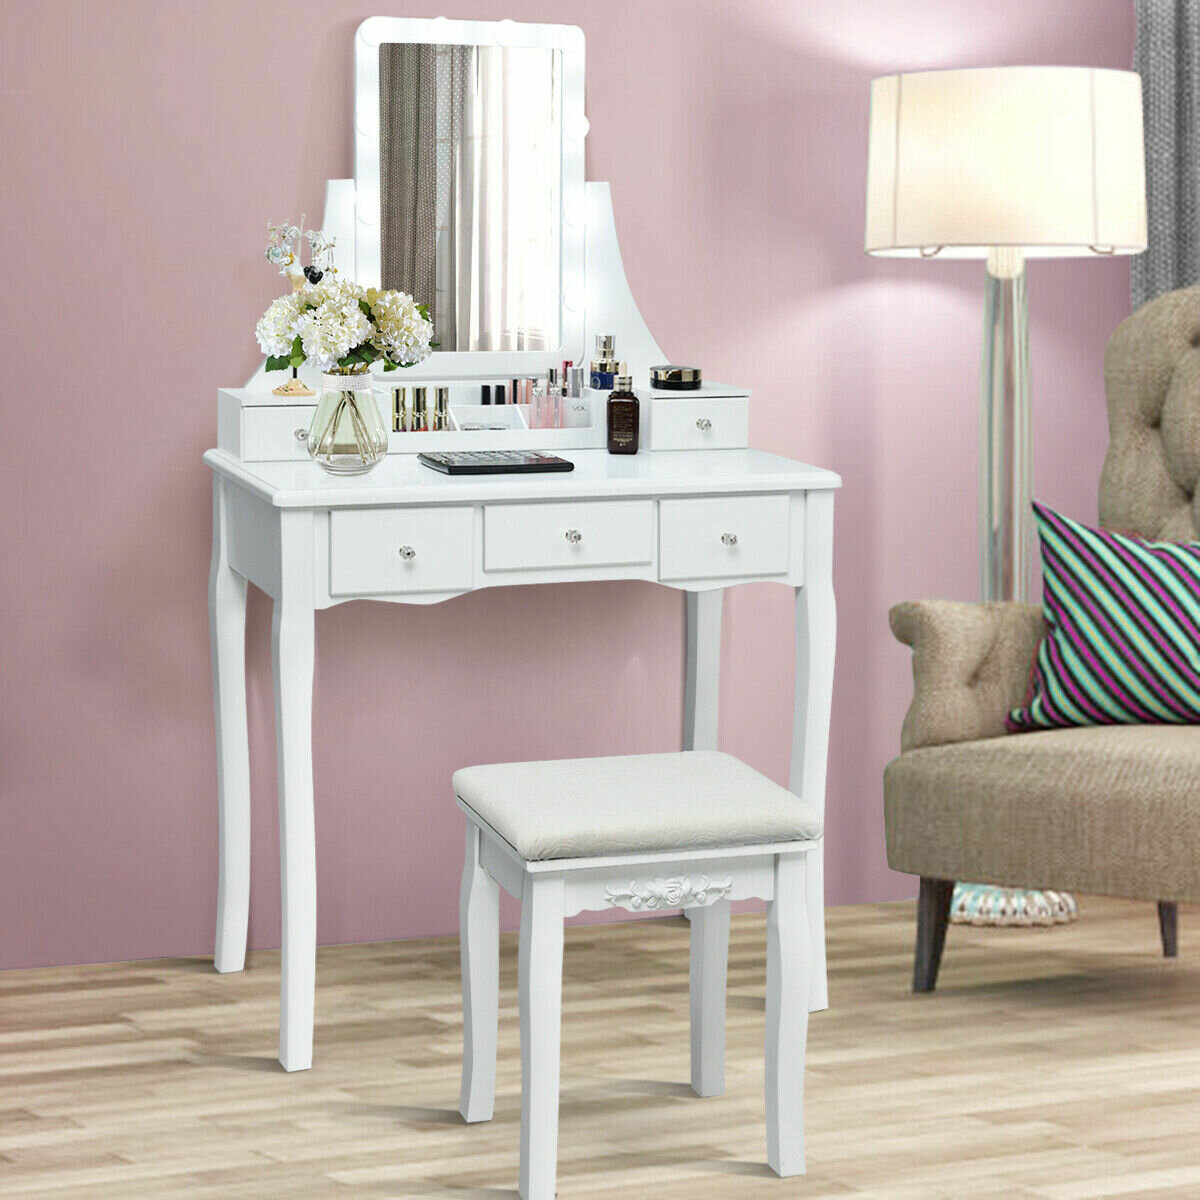 House Of Hampton Craner Solid Wood Vanity Set With Stool And Mirror Reviews Wayfair